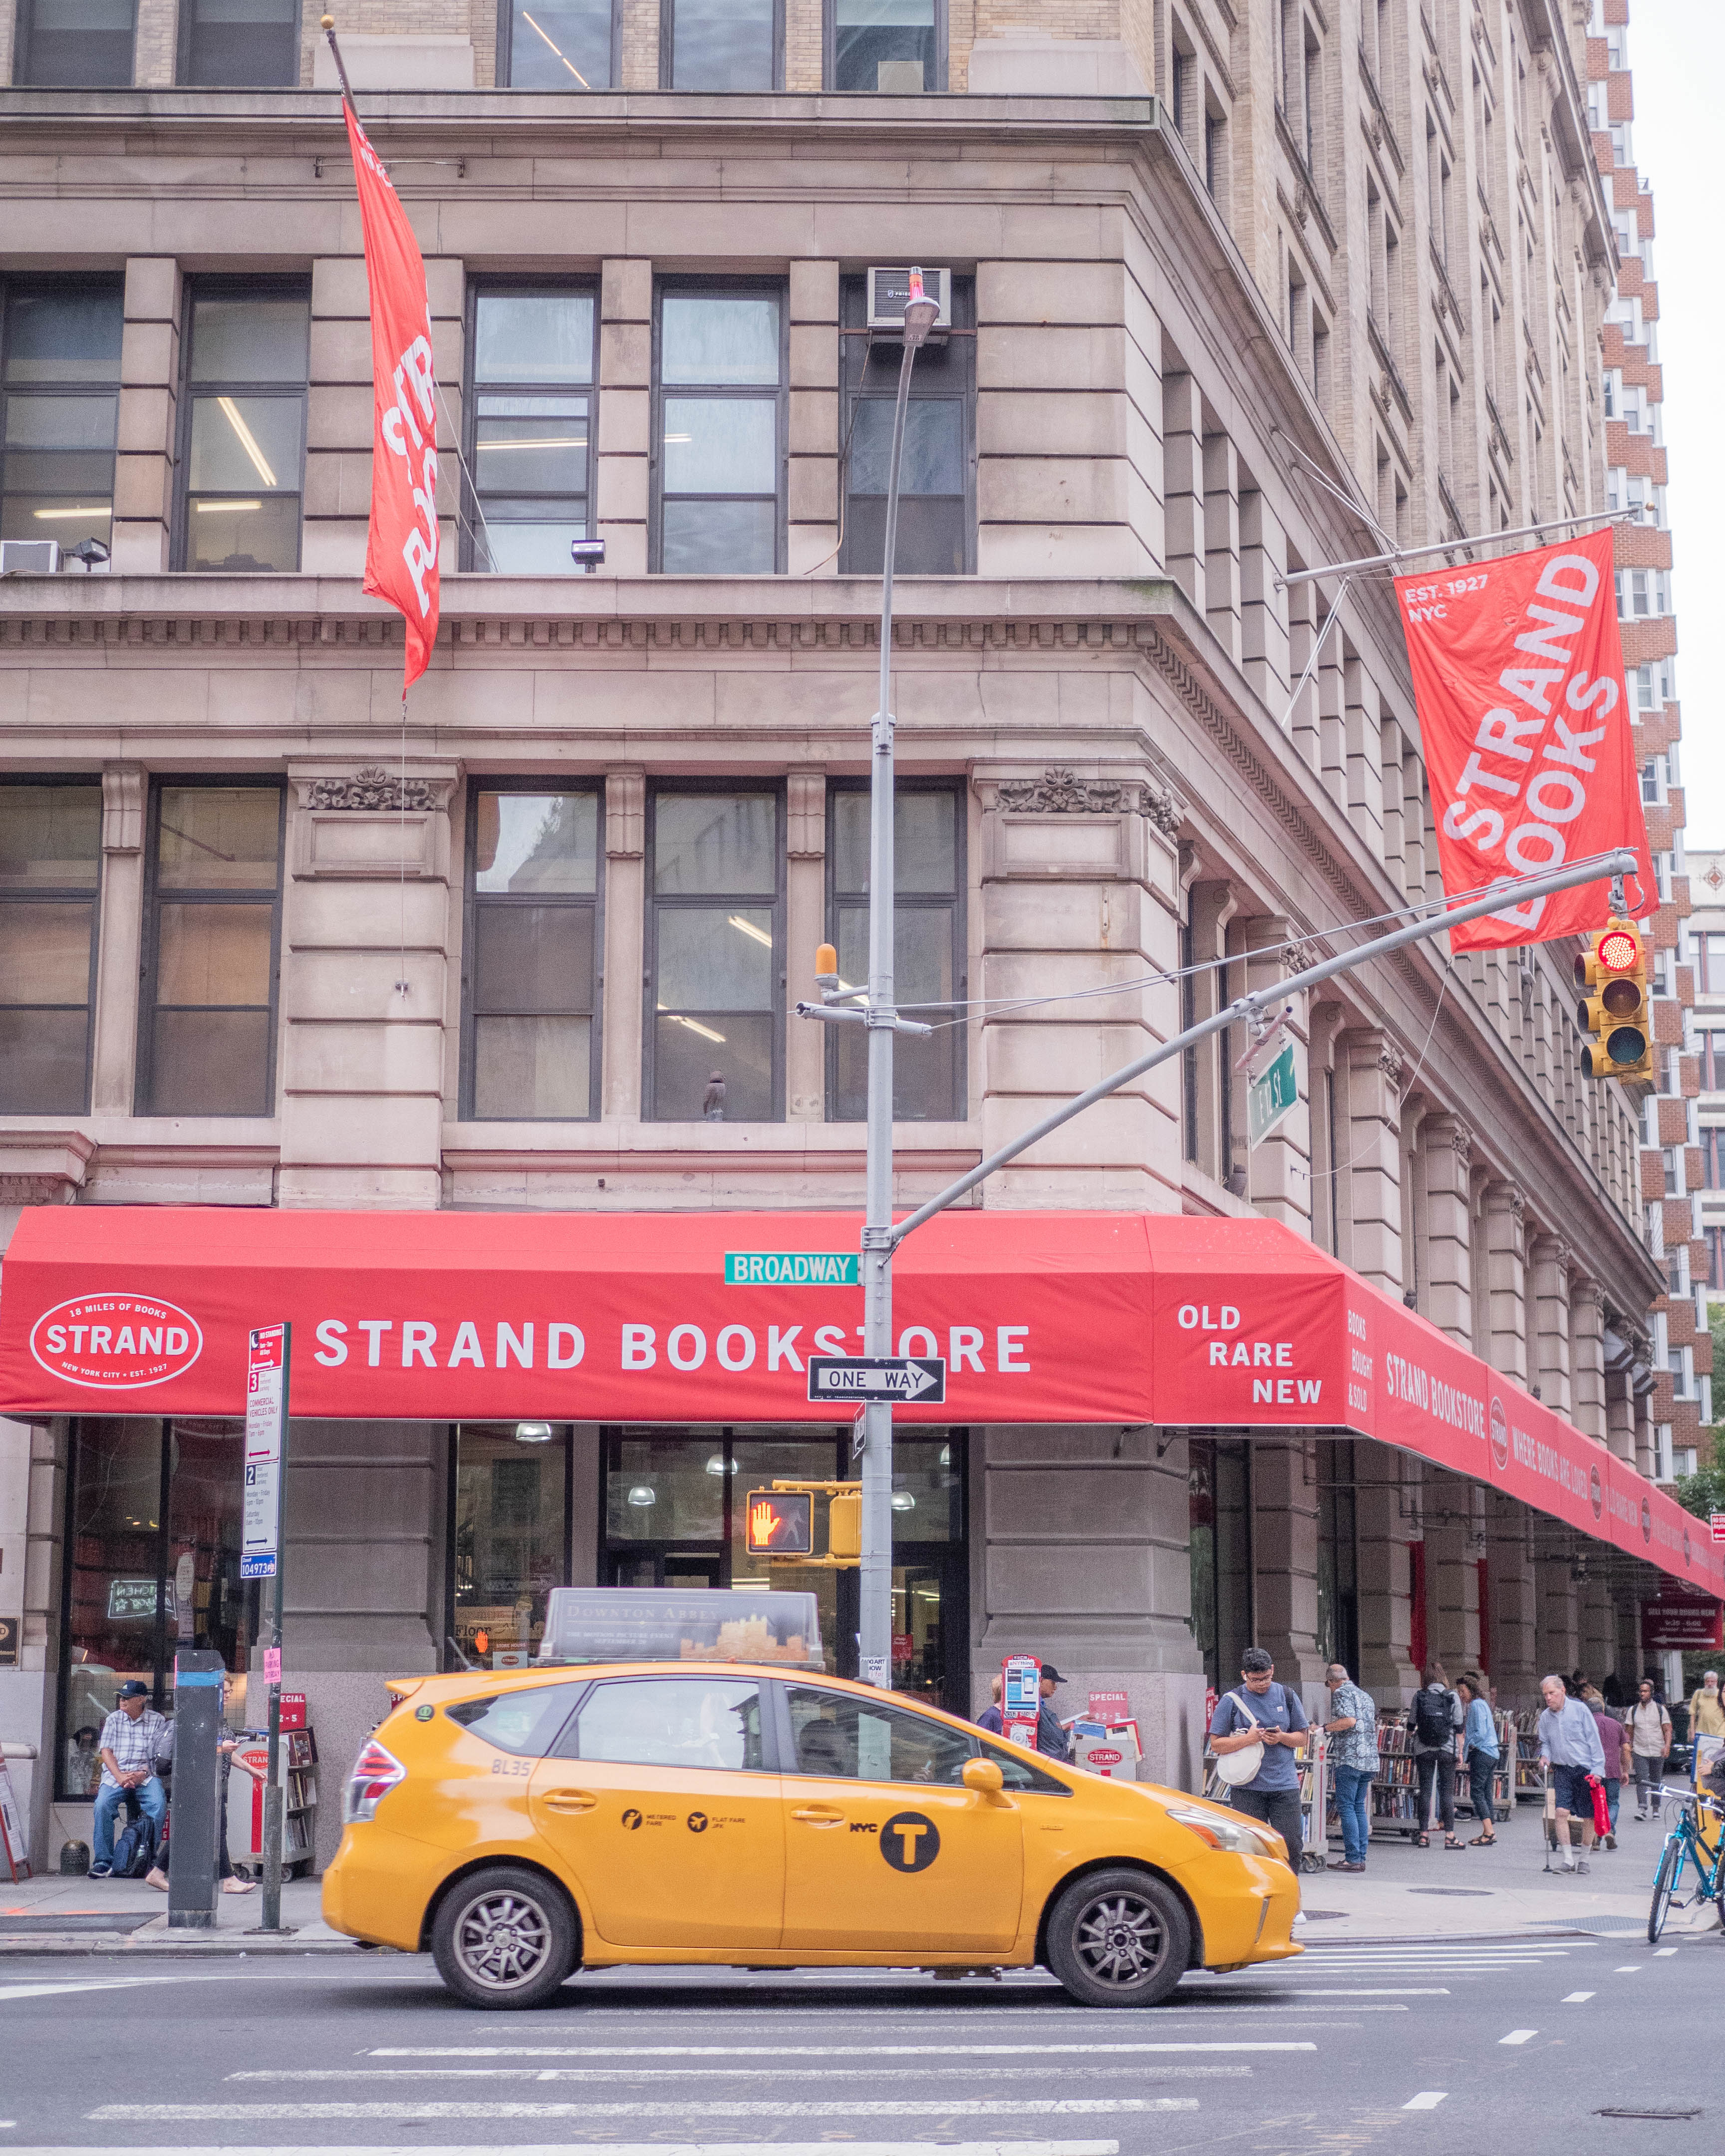 The exterior of Strand Bookstore, an NYC institution